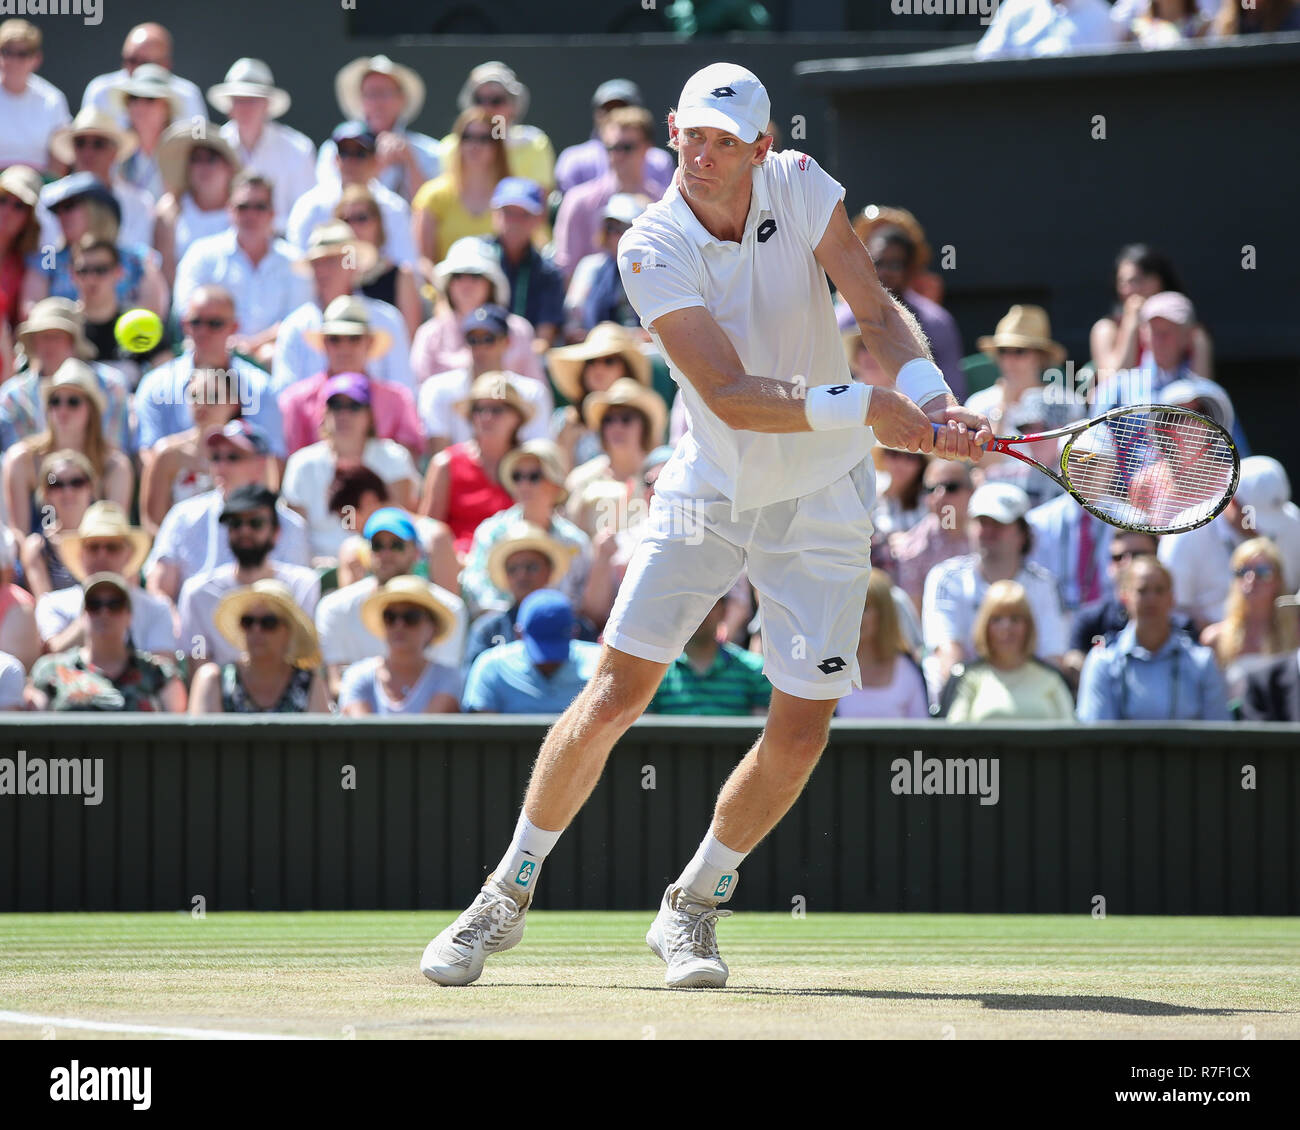 South African player Kevin Anderson in action  at Wimbledon, London, Great Britain, United Kingdom. - Stock Image